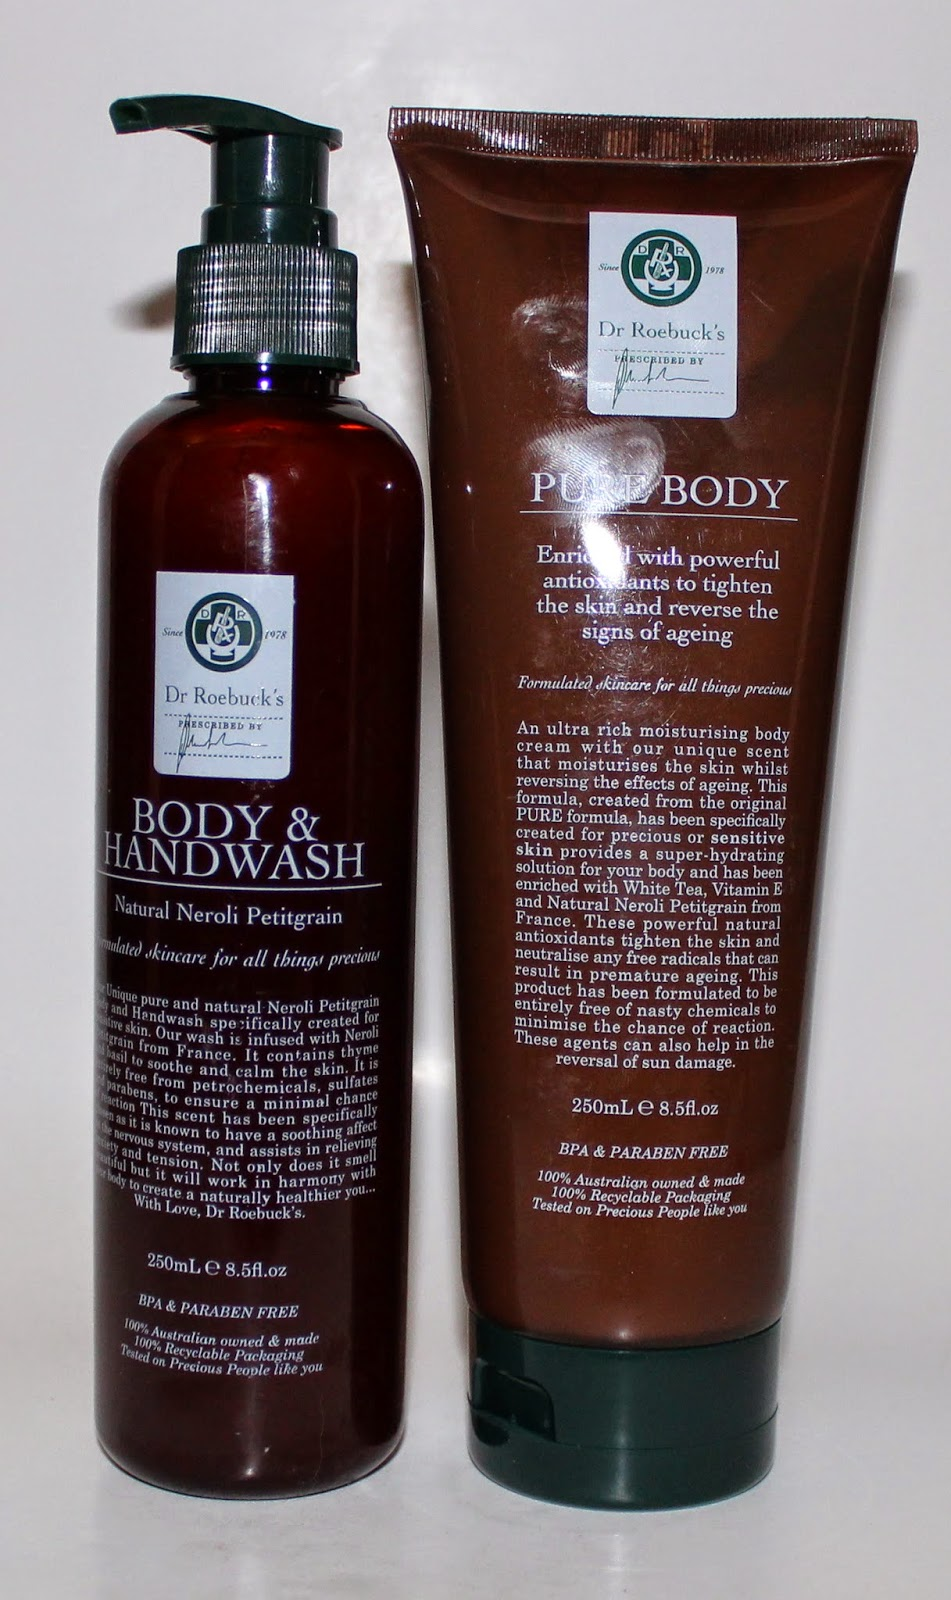 Dr Roebucks Pure Body and Body & Handwash